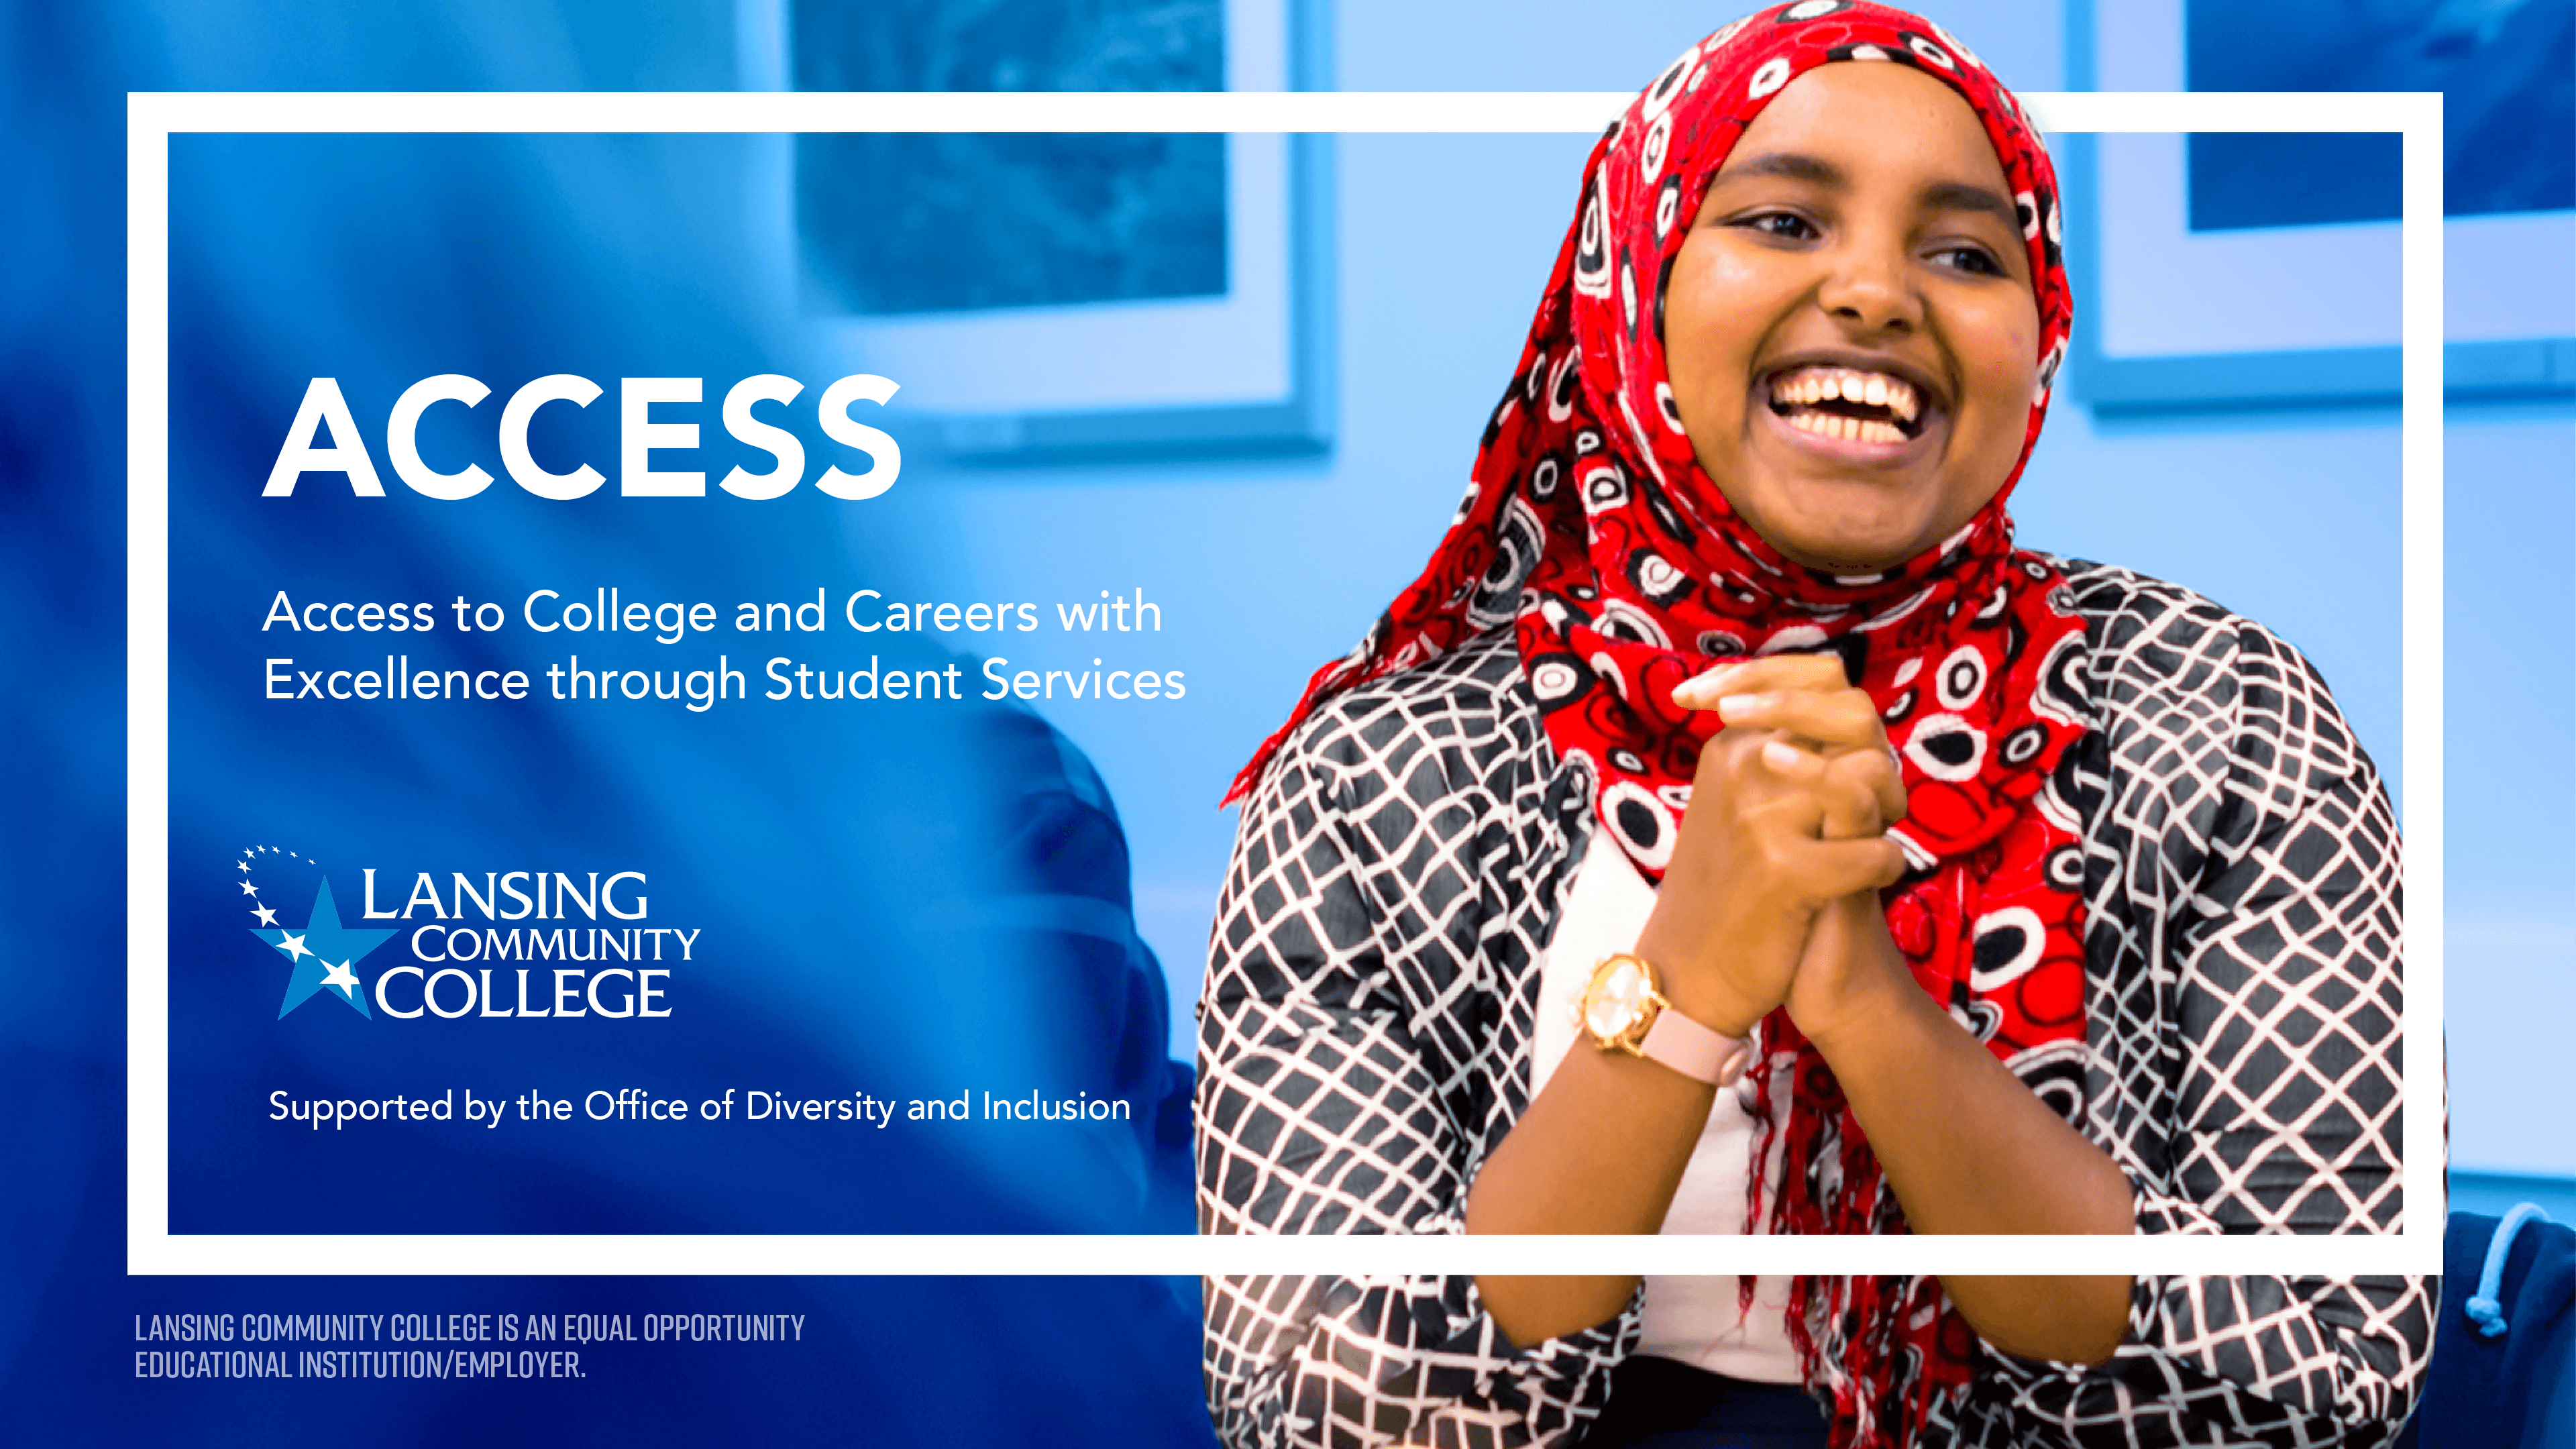 """Graphic promoting the ACCESS Program, featuring a laughing student and the words """"ACCESS: Access to College and Careers with Excellence through Student Services"""""""